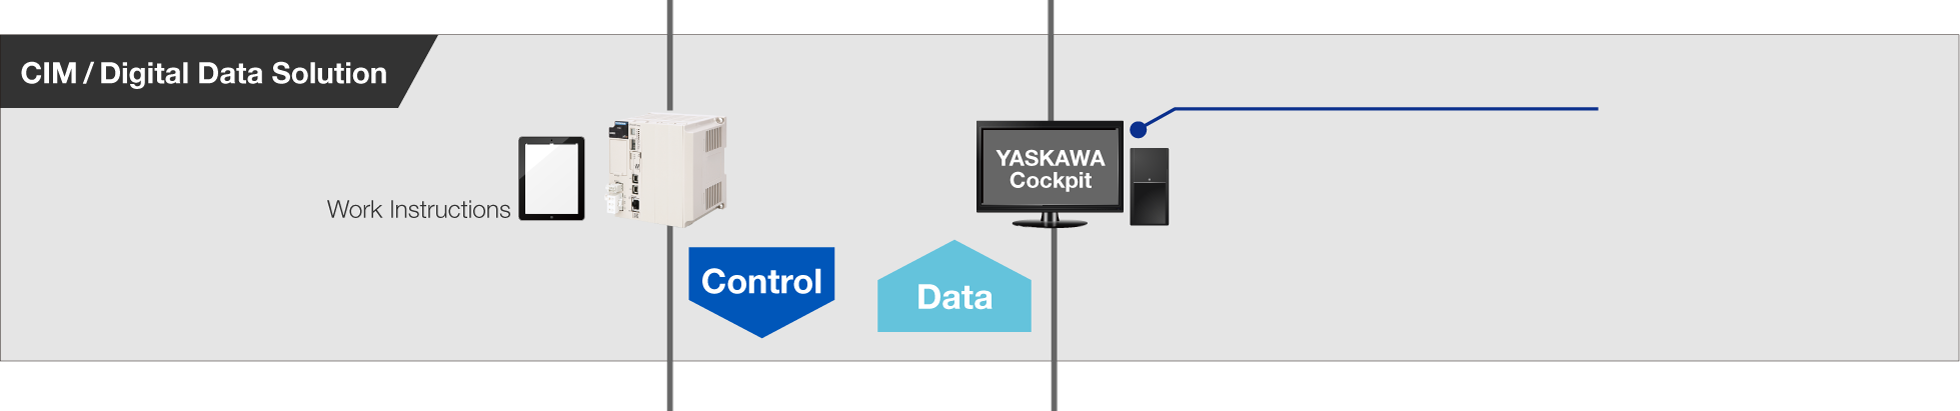 CIM/Digital Data Solution Work Instructions Control Data YASKAWA Cockpit